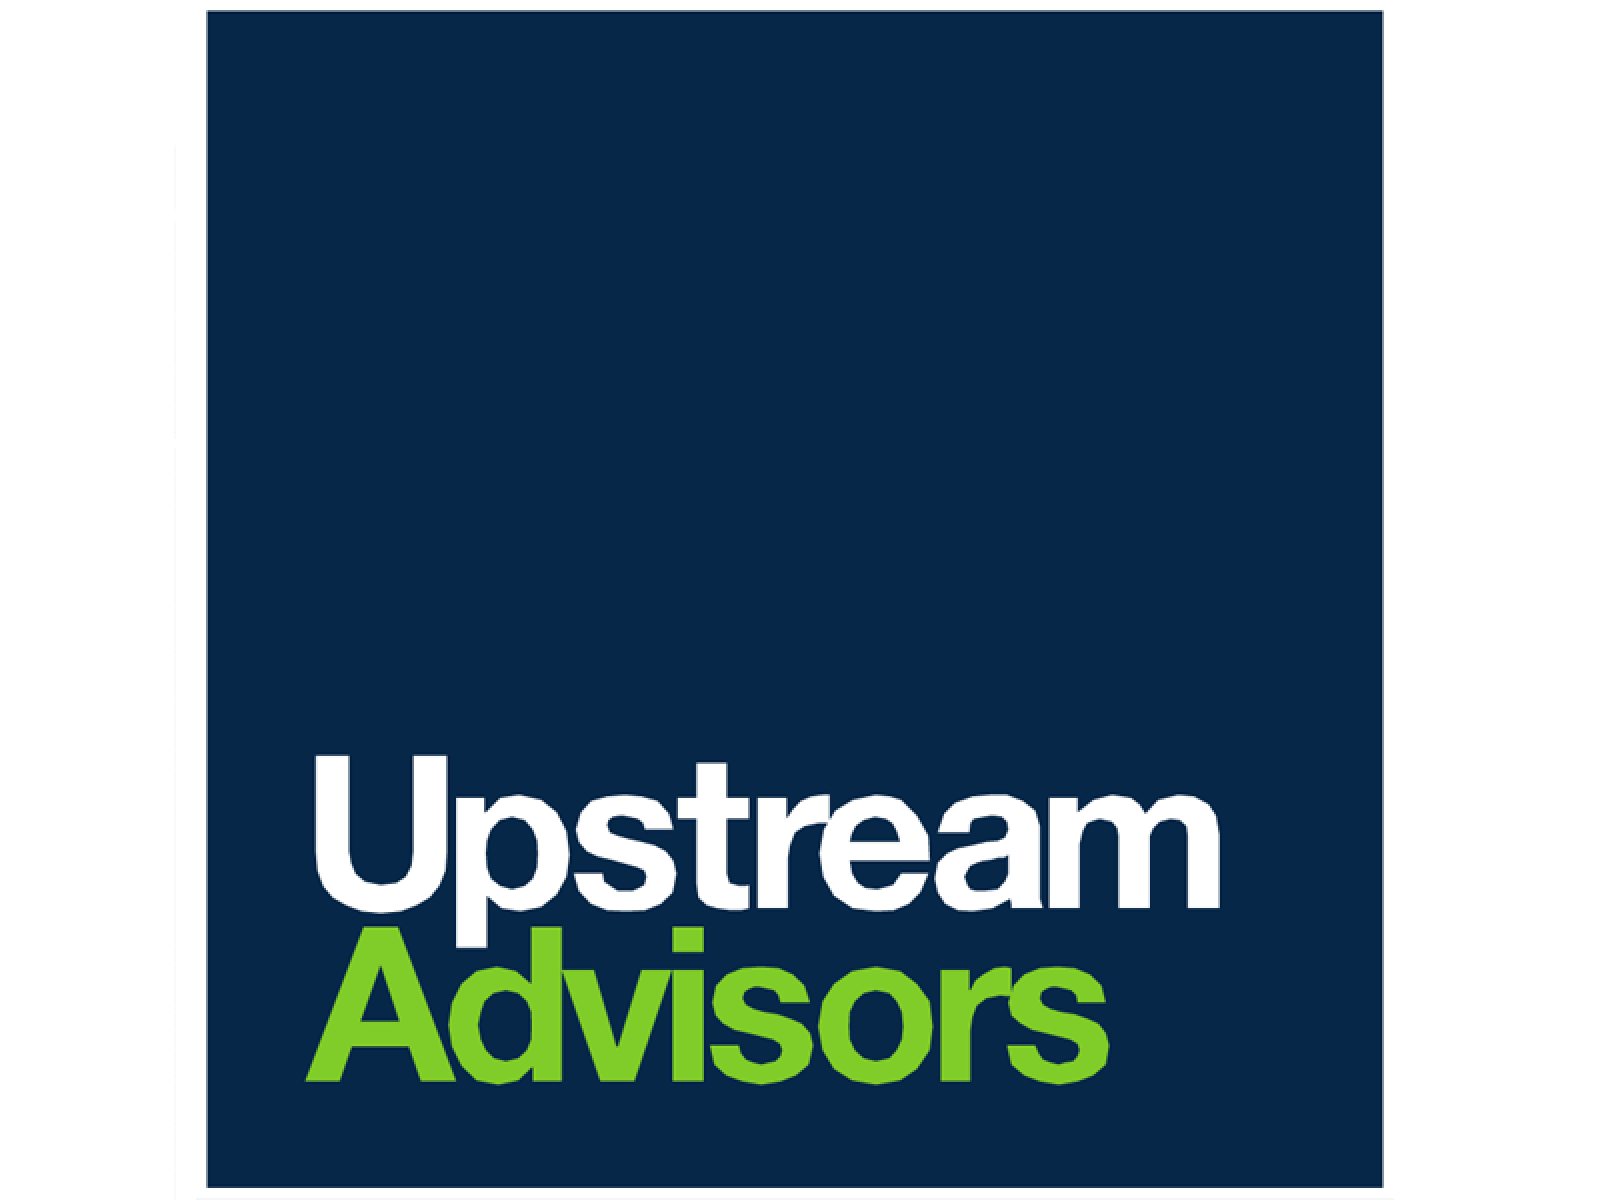 Upstream Advisors